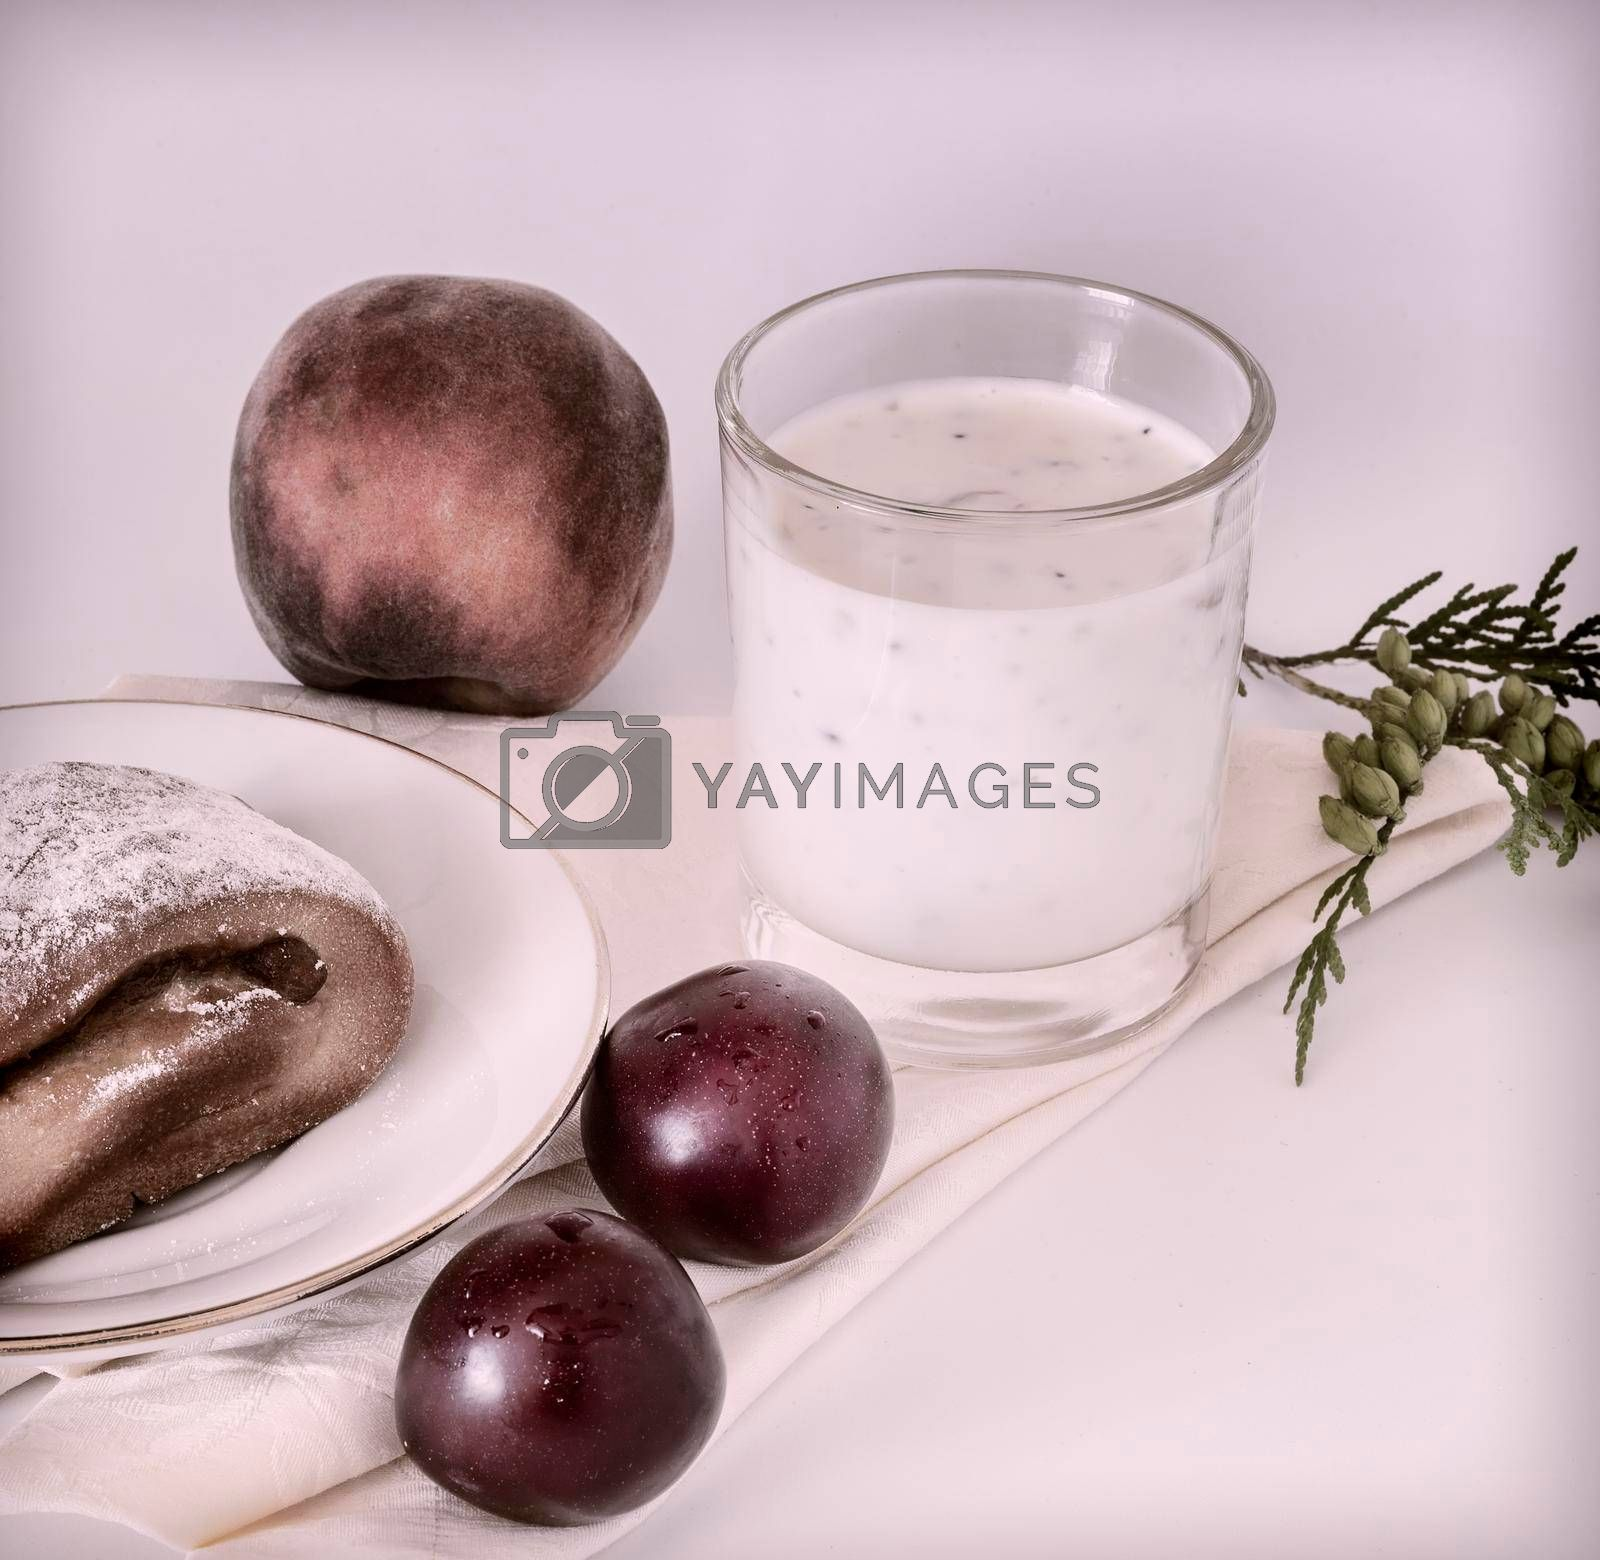 Royalty free image of Healthy Breakfast: yoghurt, delicious scones and plums by georgina198